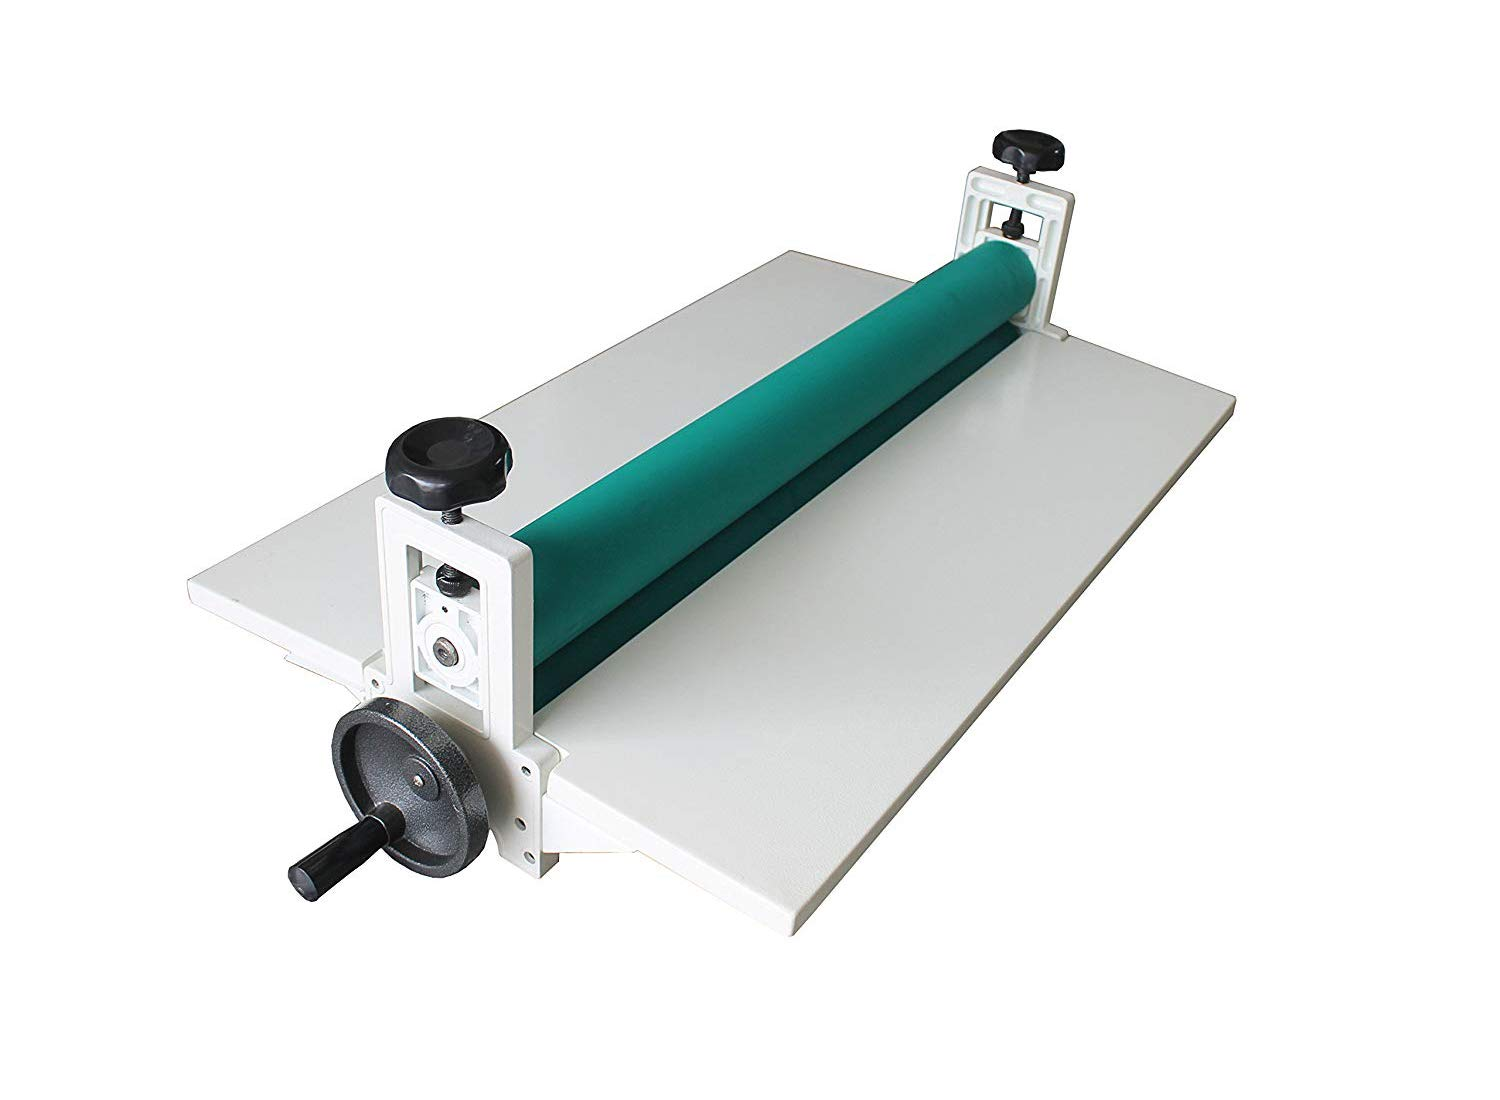 All Metal Frame 14Inch 360MM Manual Cold Roll Laminator Mount Laminating Machine by Cold Laminating Machine/Films